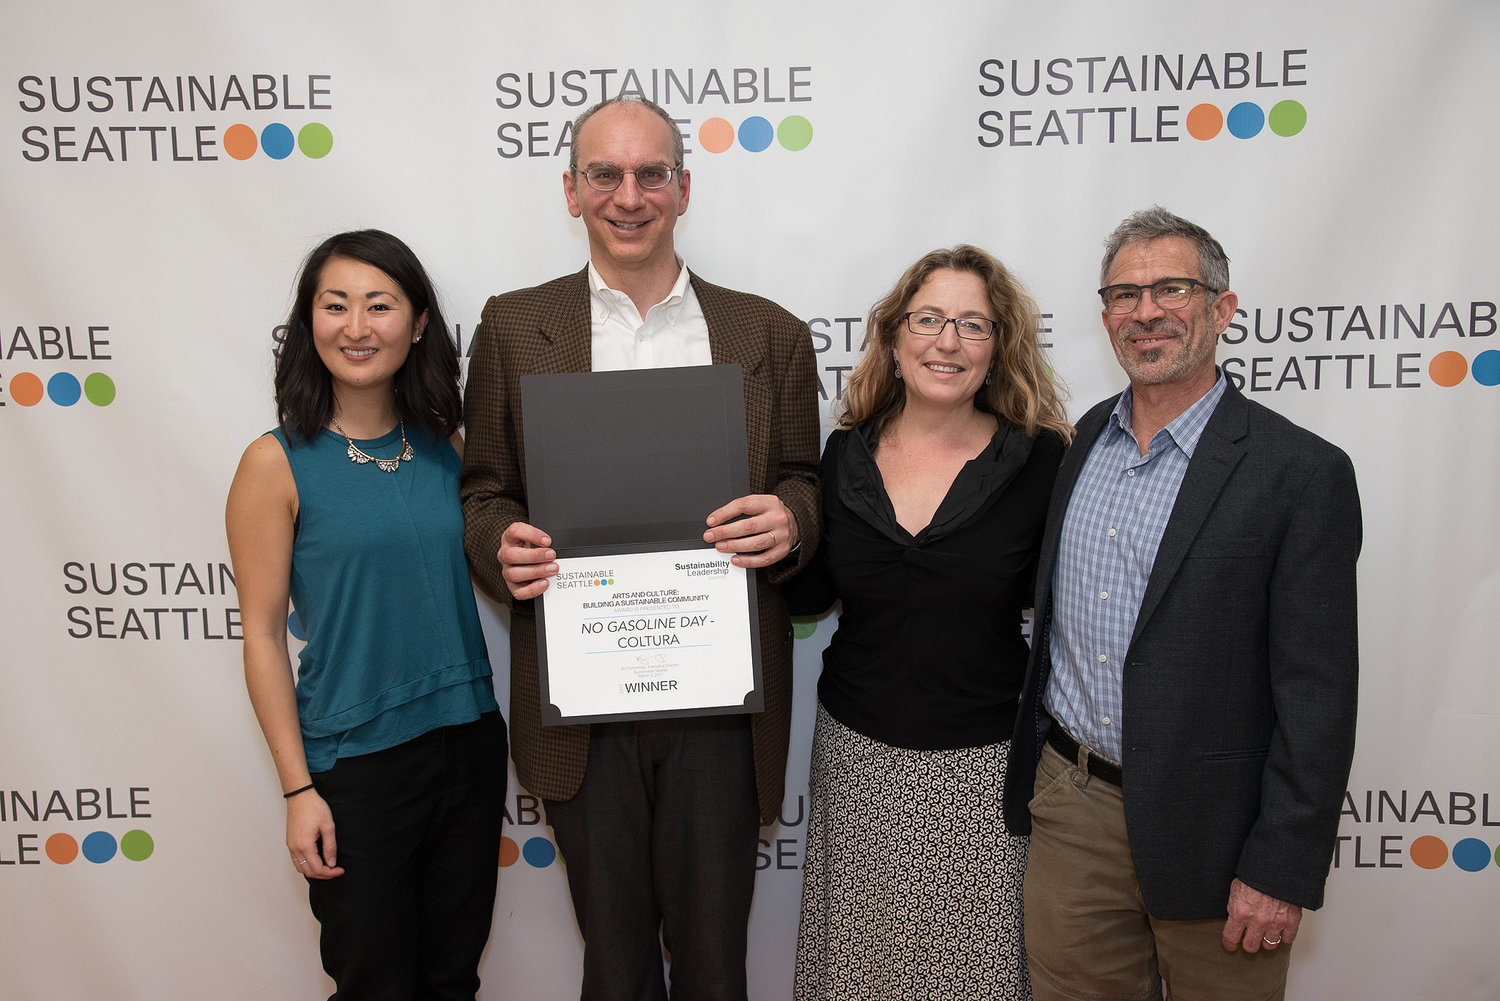 PROUD RECIPIENT OF THE 2017 SUSTAINABLE SEATTLE AWARD